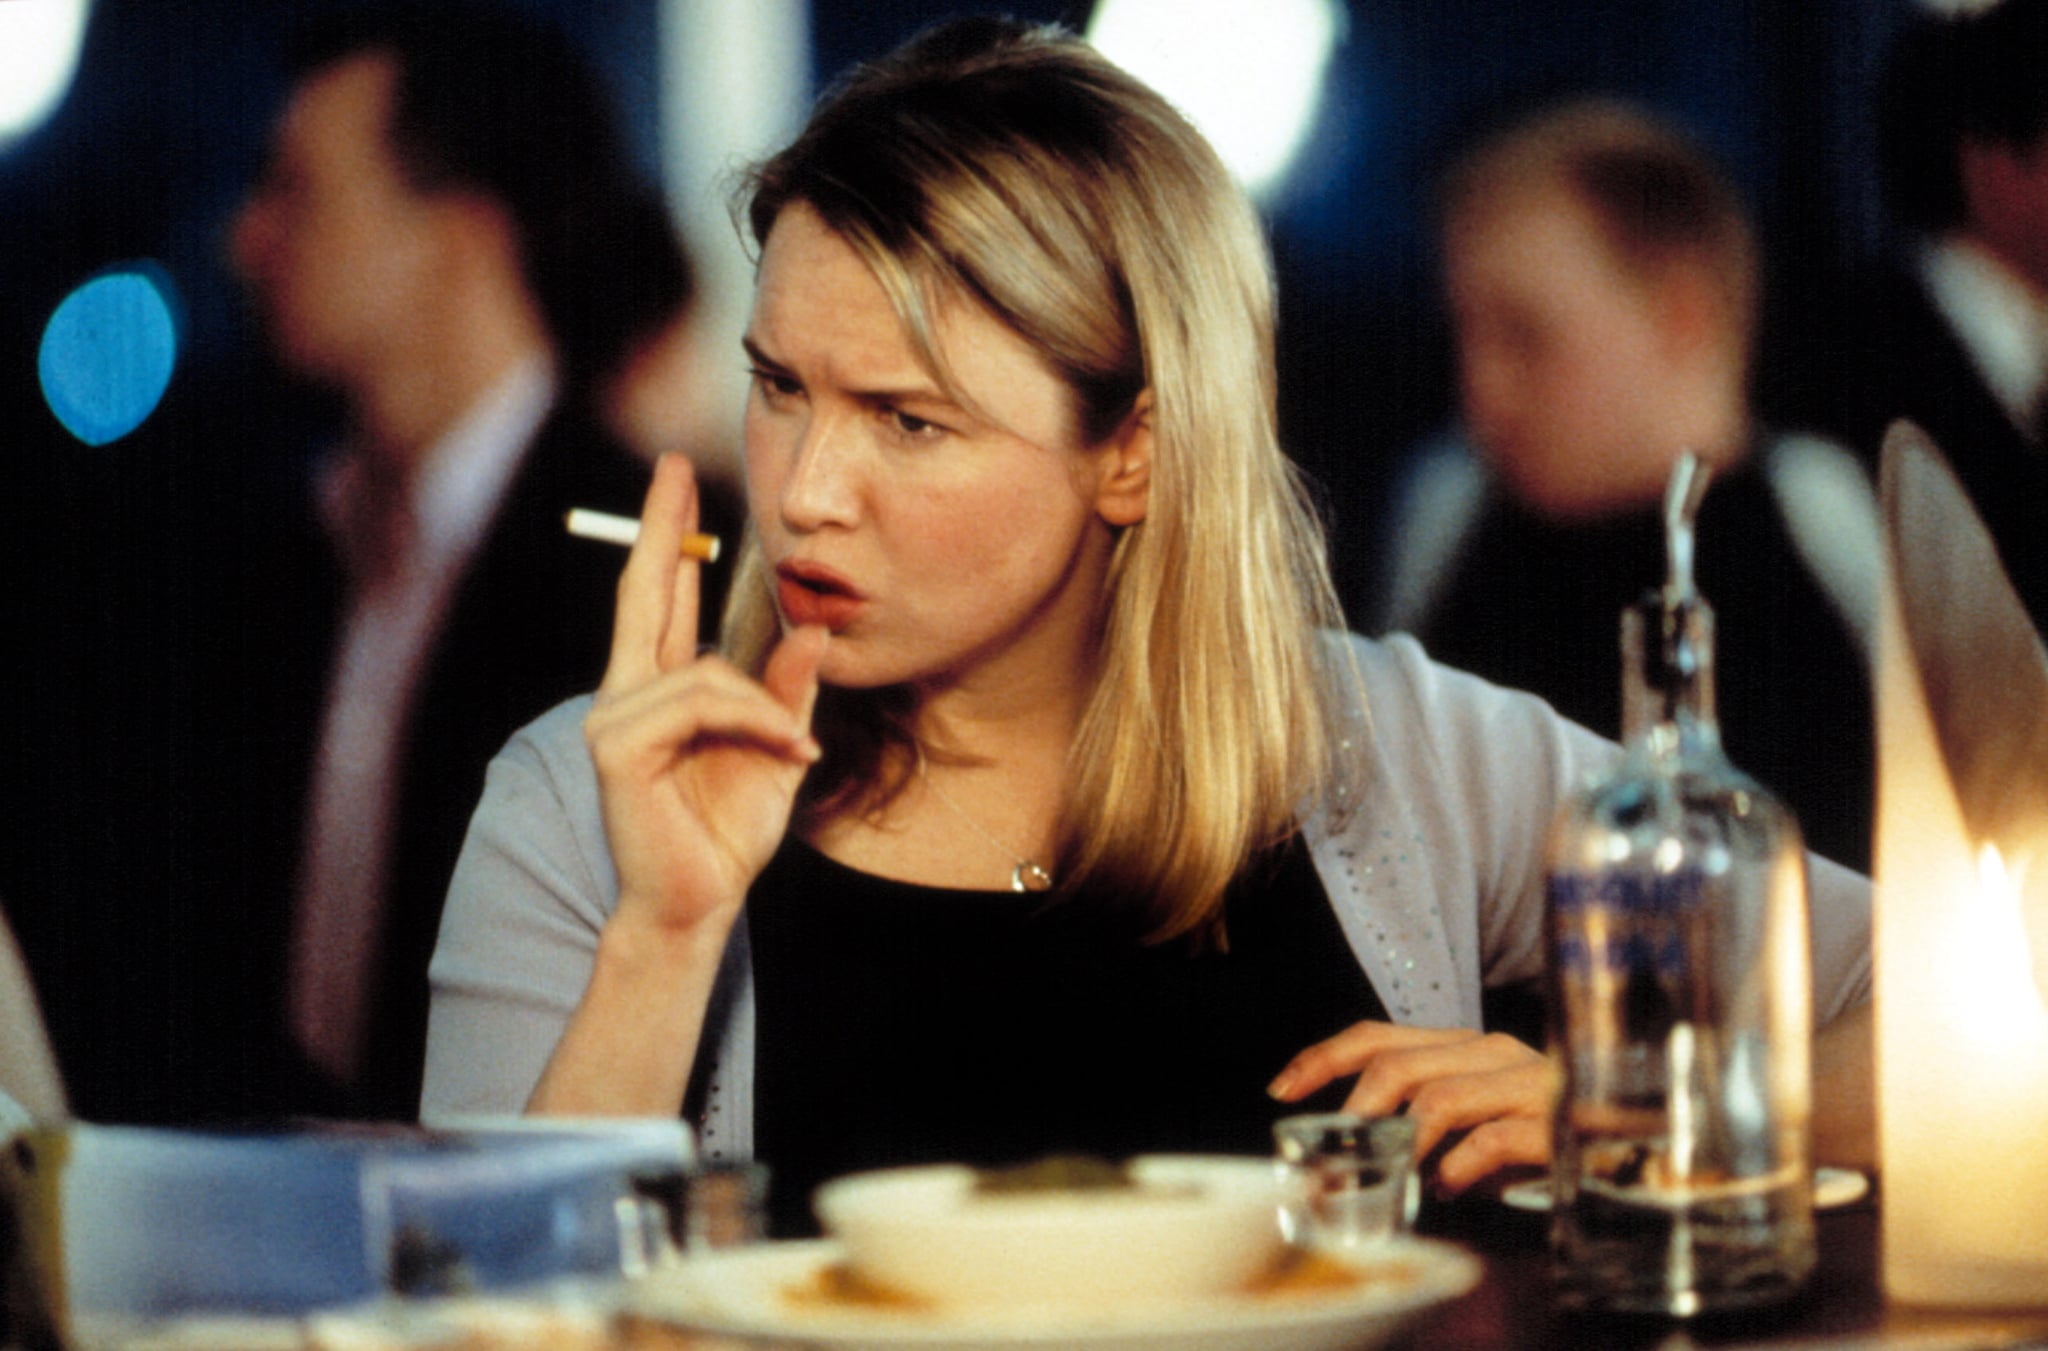 Bridget Jones S Diary 2001 50 Films That Are Perfect For Your Next Solo Movie Night Popsugar Entertainment Photo 2